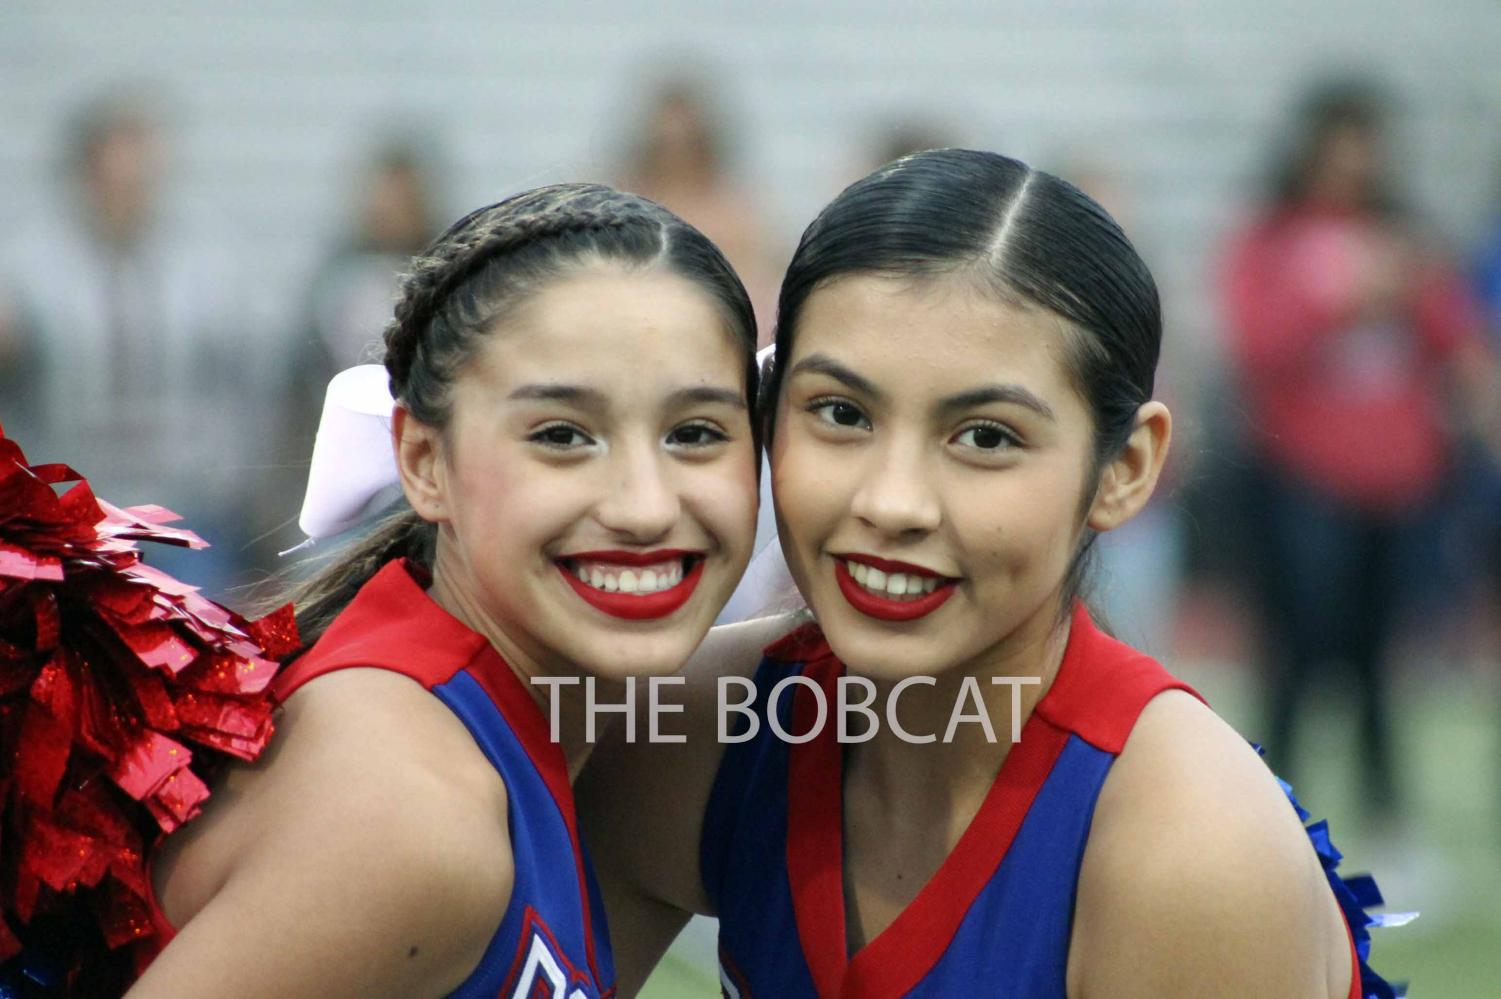 Freshman and Sophomore Cheerleaders, Lauren Perez and Angel Ponce participate in the 'Welcome' cheer at Fields of Faith.